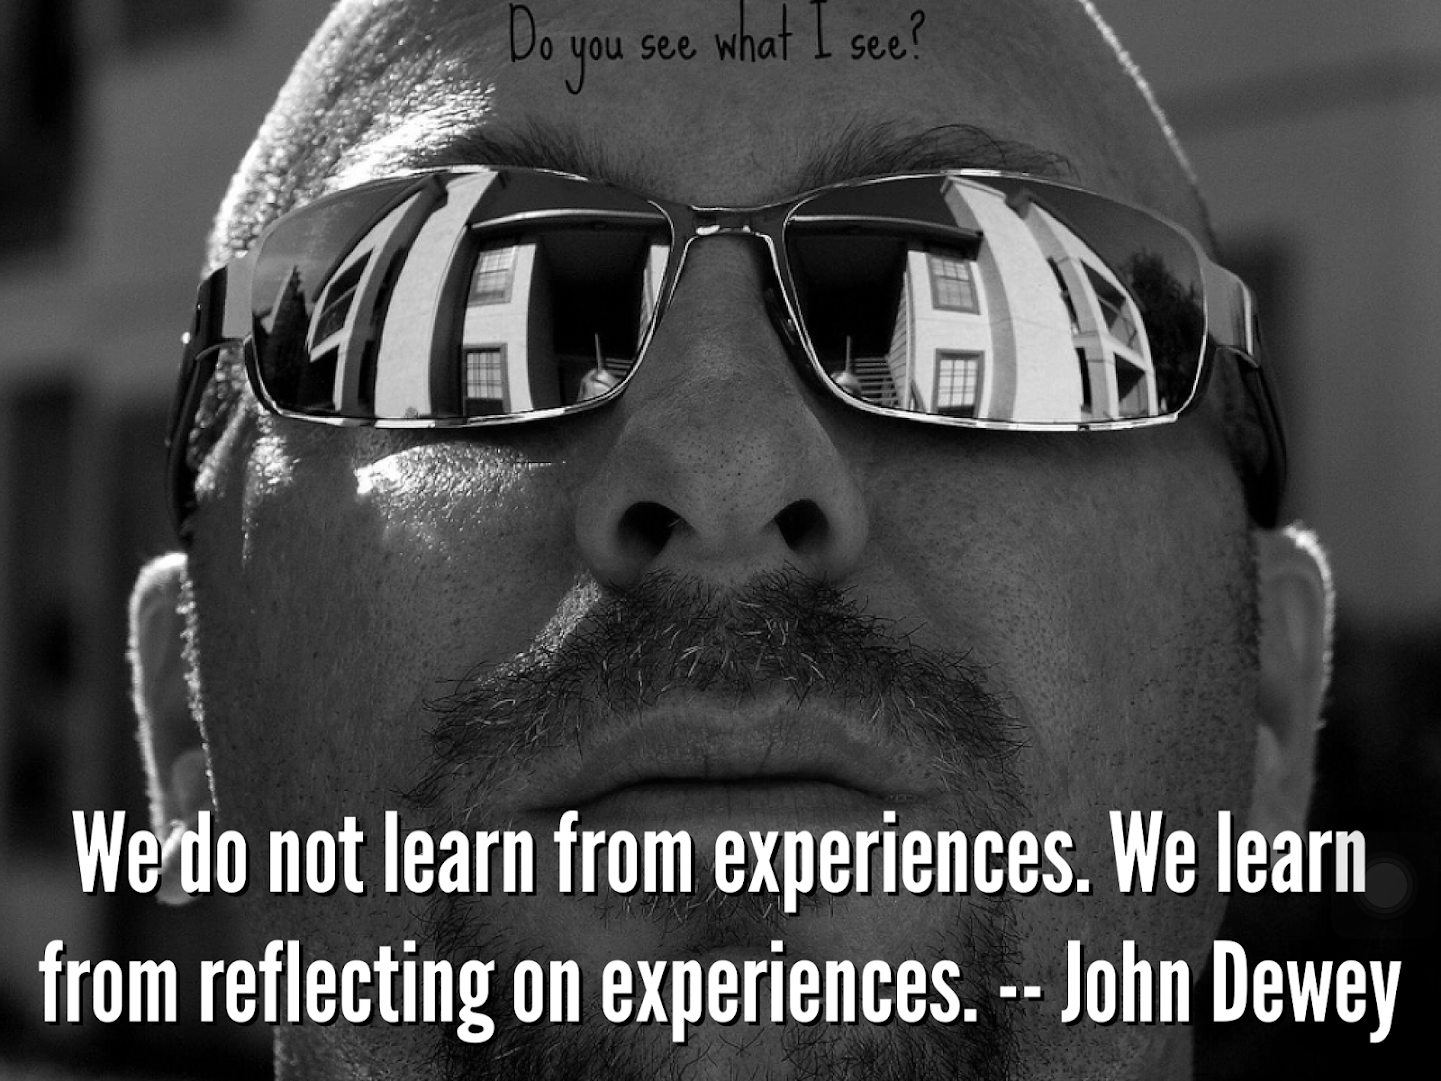 We do not learn from experiences. We learn from reflecting on experiences. -- John Dewey.